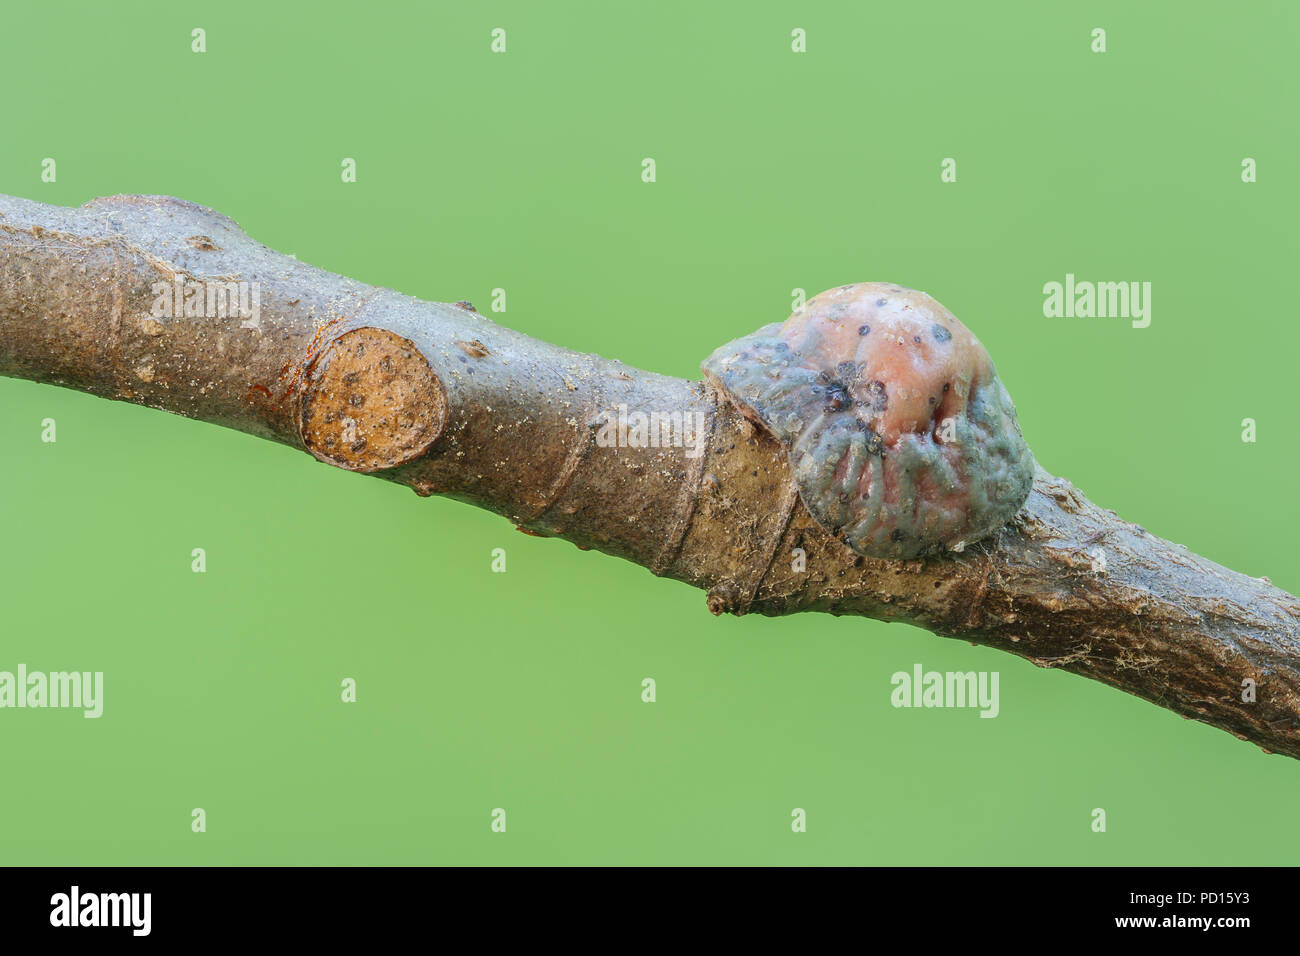 A mature female Tuliptree Scale (Toumeyella liriodendri) attached to a branch of a Tuliptree, which also shows a previous attachment point. - Stock Image